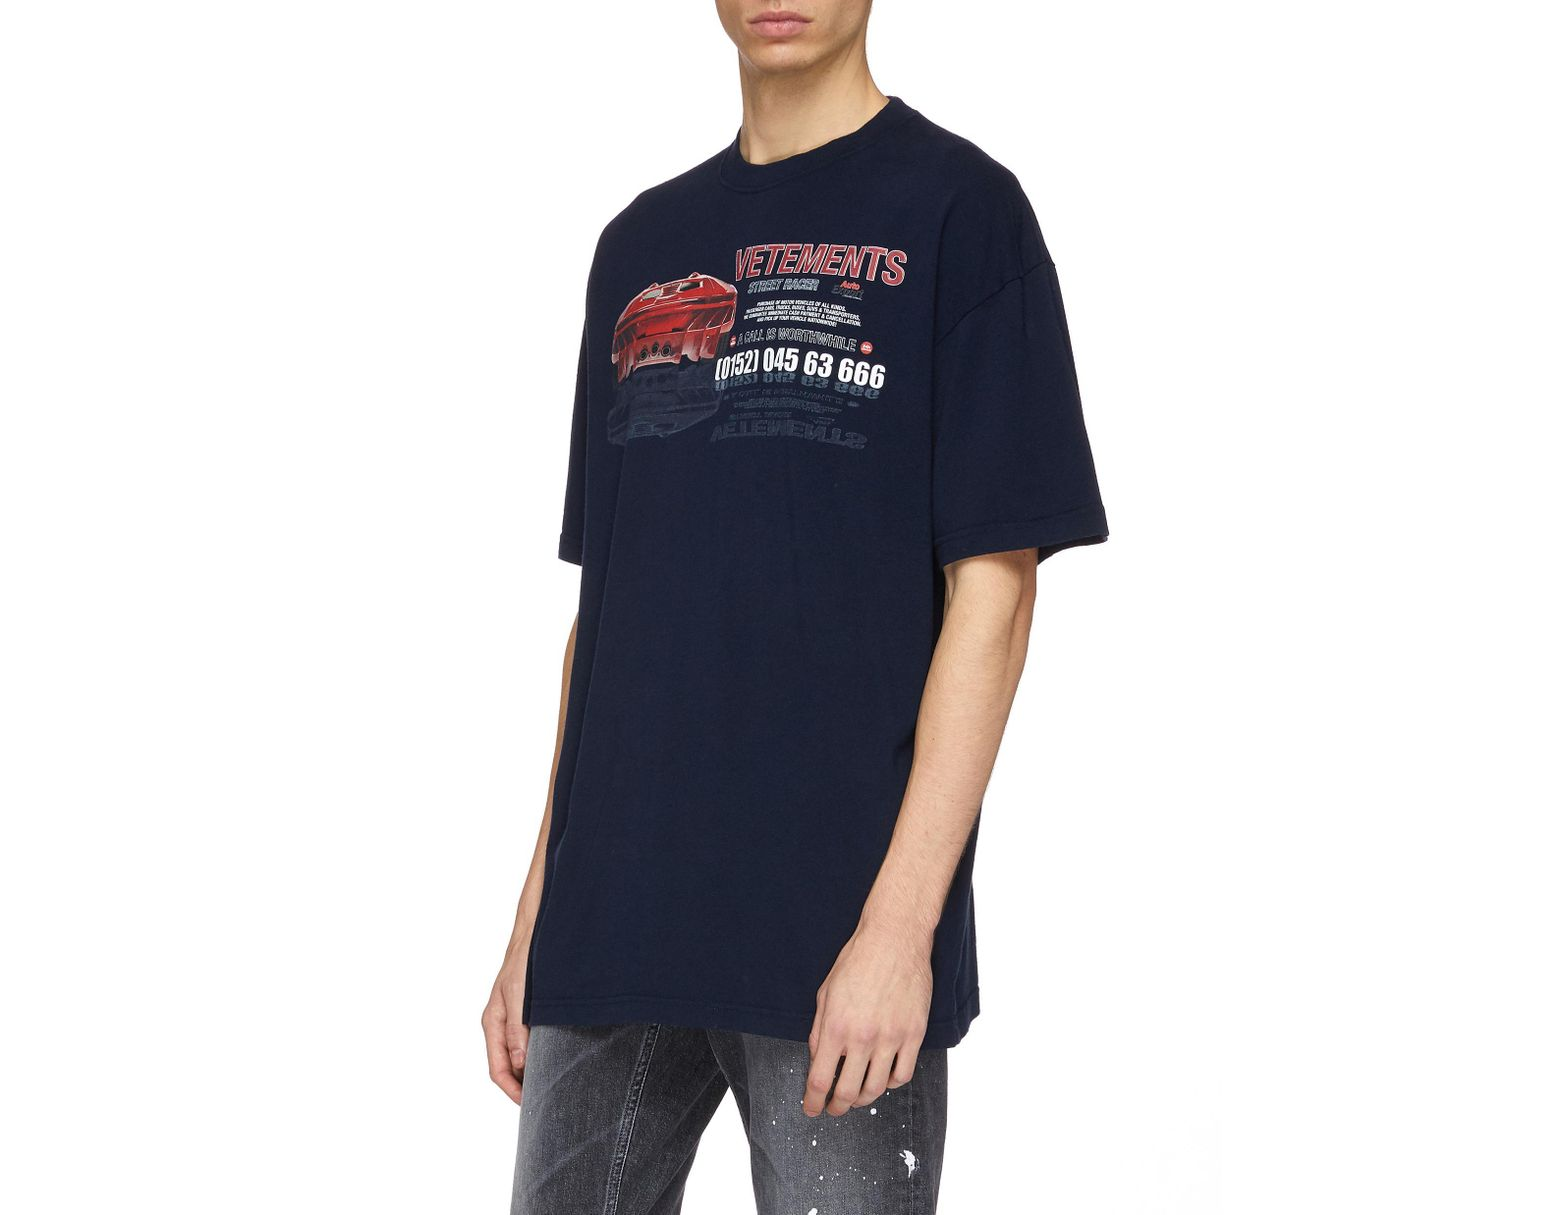 016646ec Vetements 'car Hotline' Slogan Graphic Print Oversized Unisex T-shirt in  Blue for Men - Save 19% - Lyst